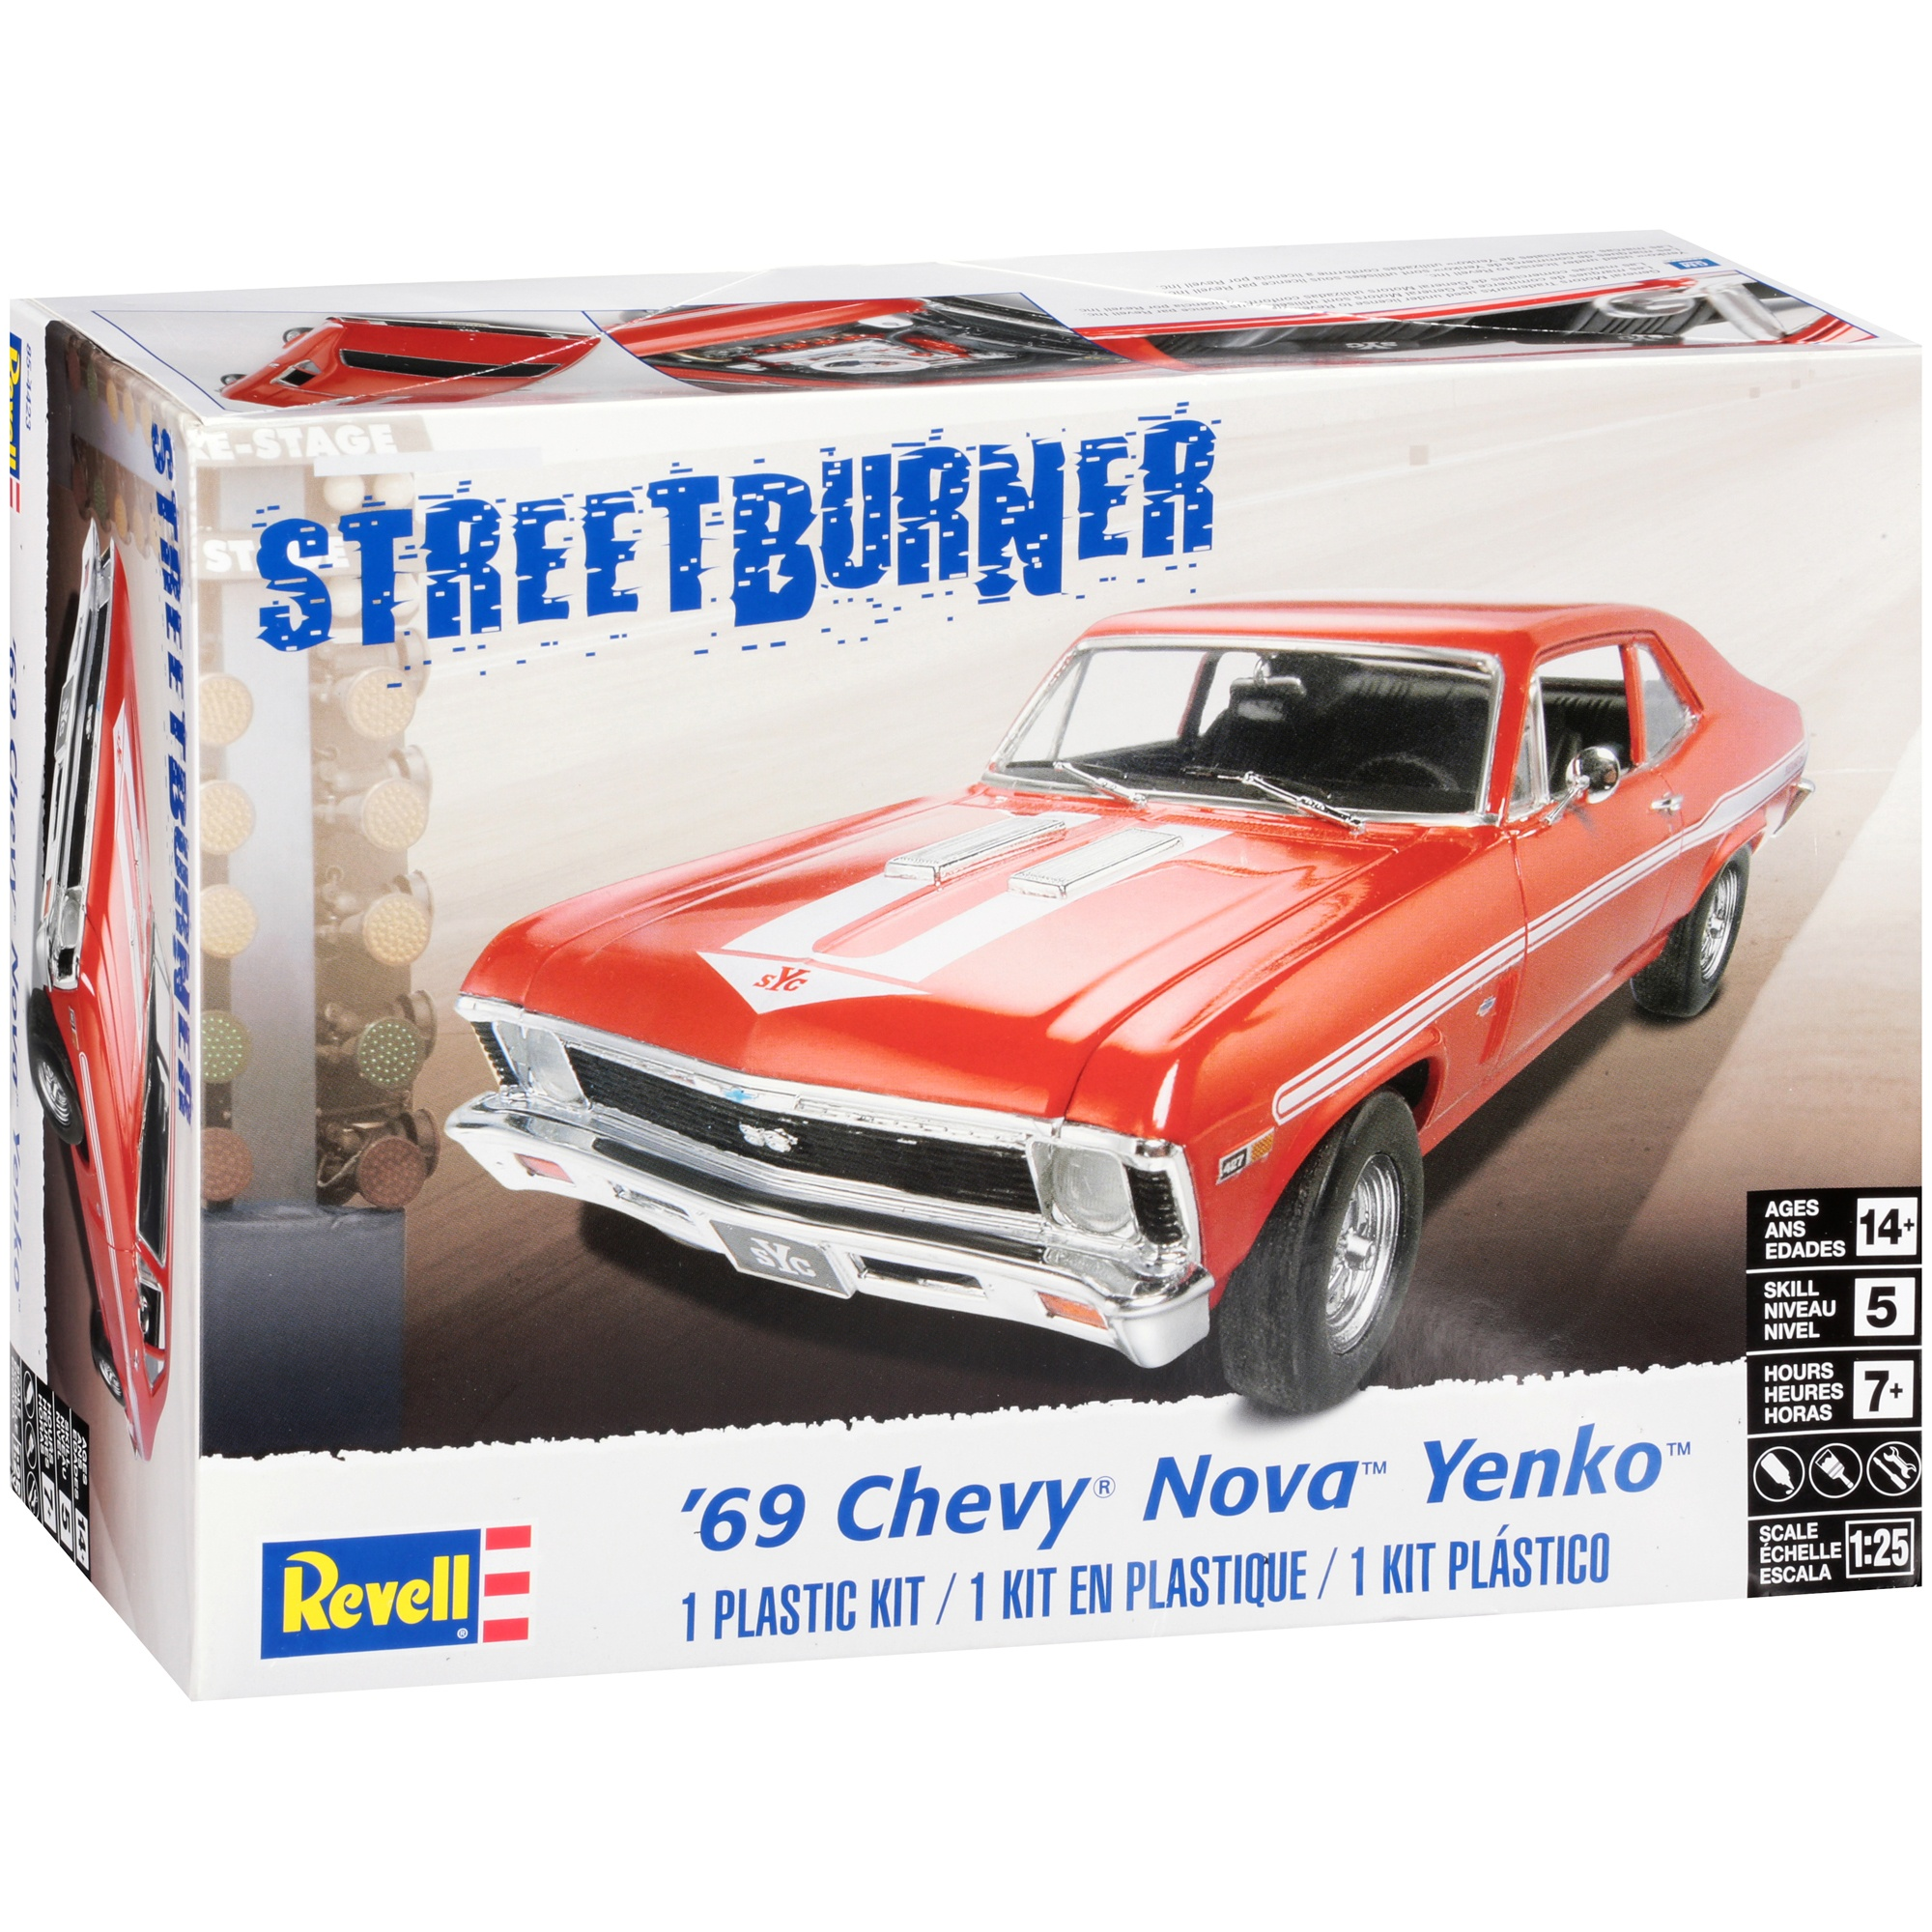 Revell® Streetburner '69 Chevy® Nova™ Yenko™ Model Kit 111 pc Box